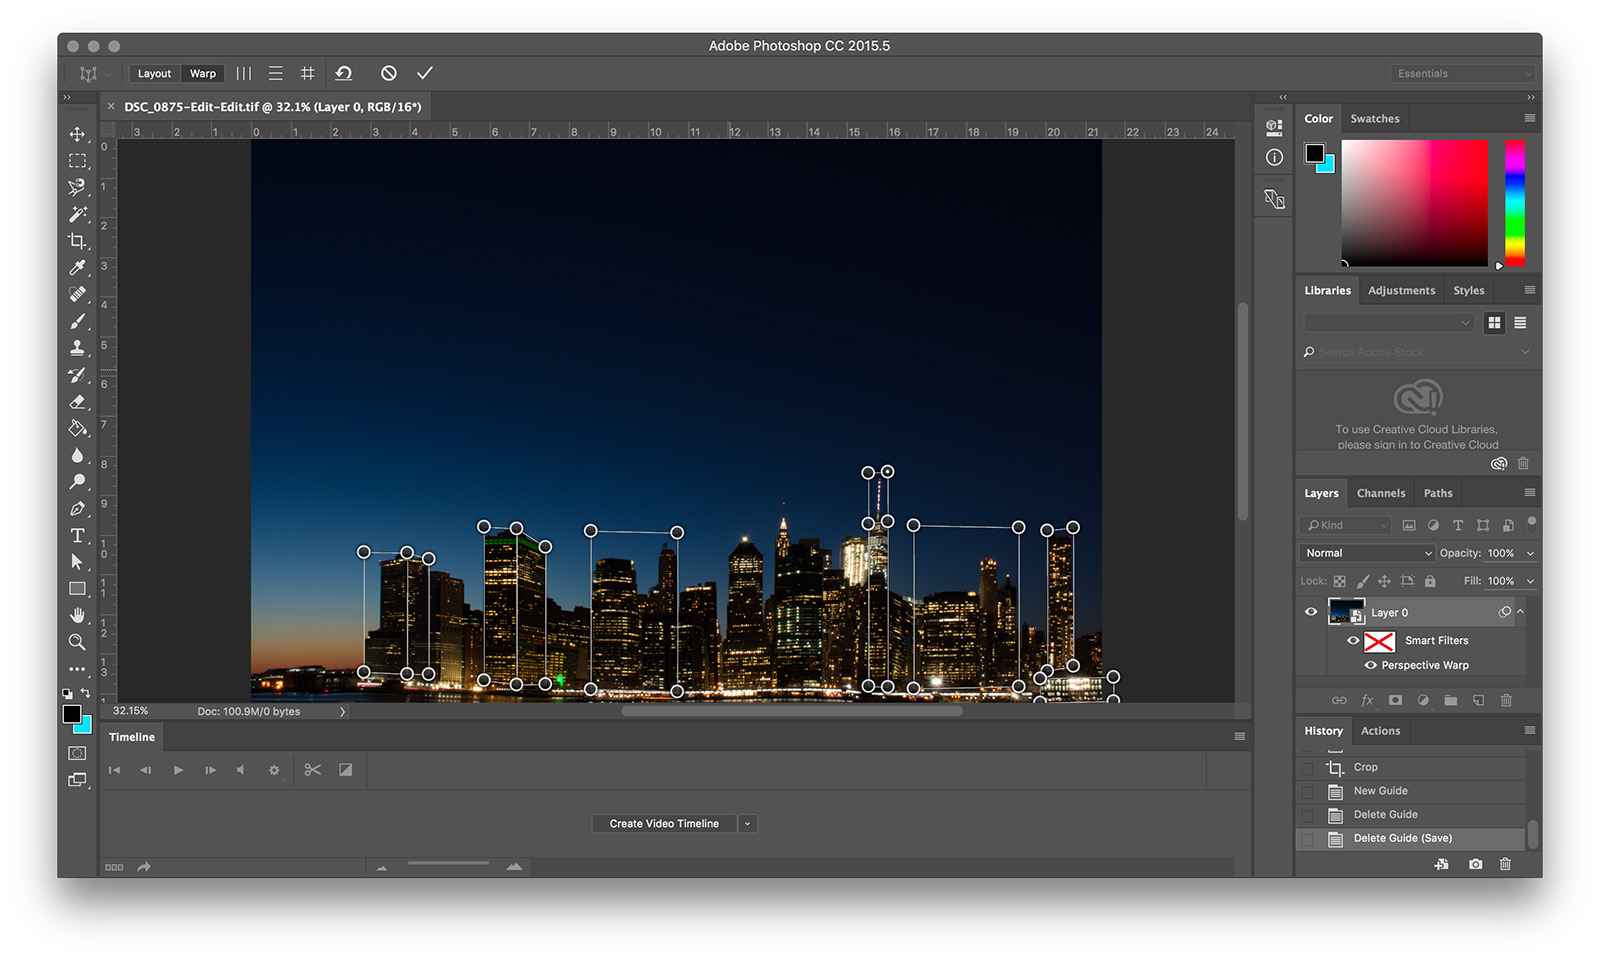 Photo Editing: Using Photoshop's Perspective Warp To Fix Distortion and Lens Errors